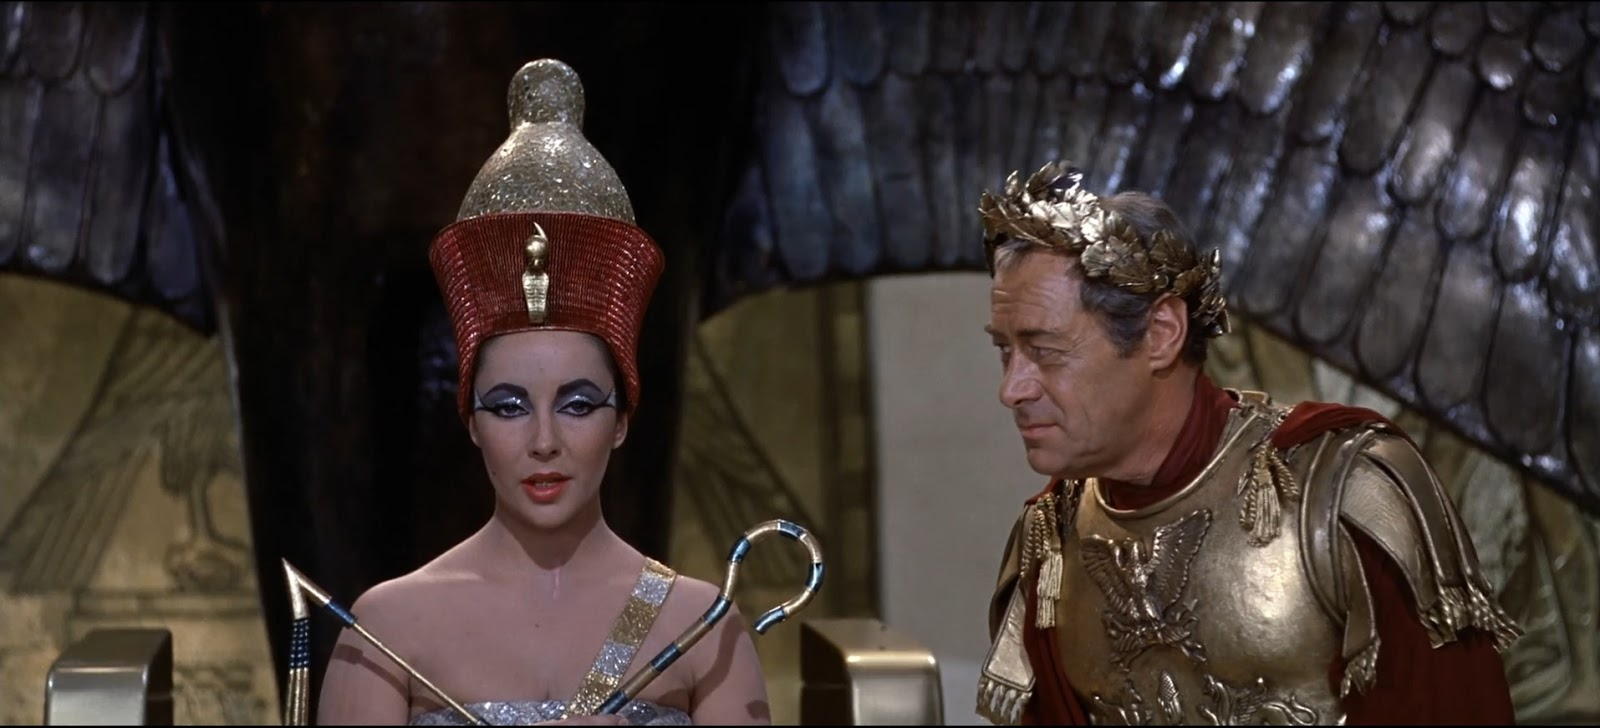 Cleopatra 1963 Dual BRRip x264 720 Zippy